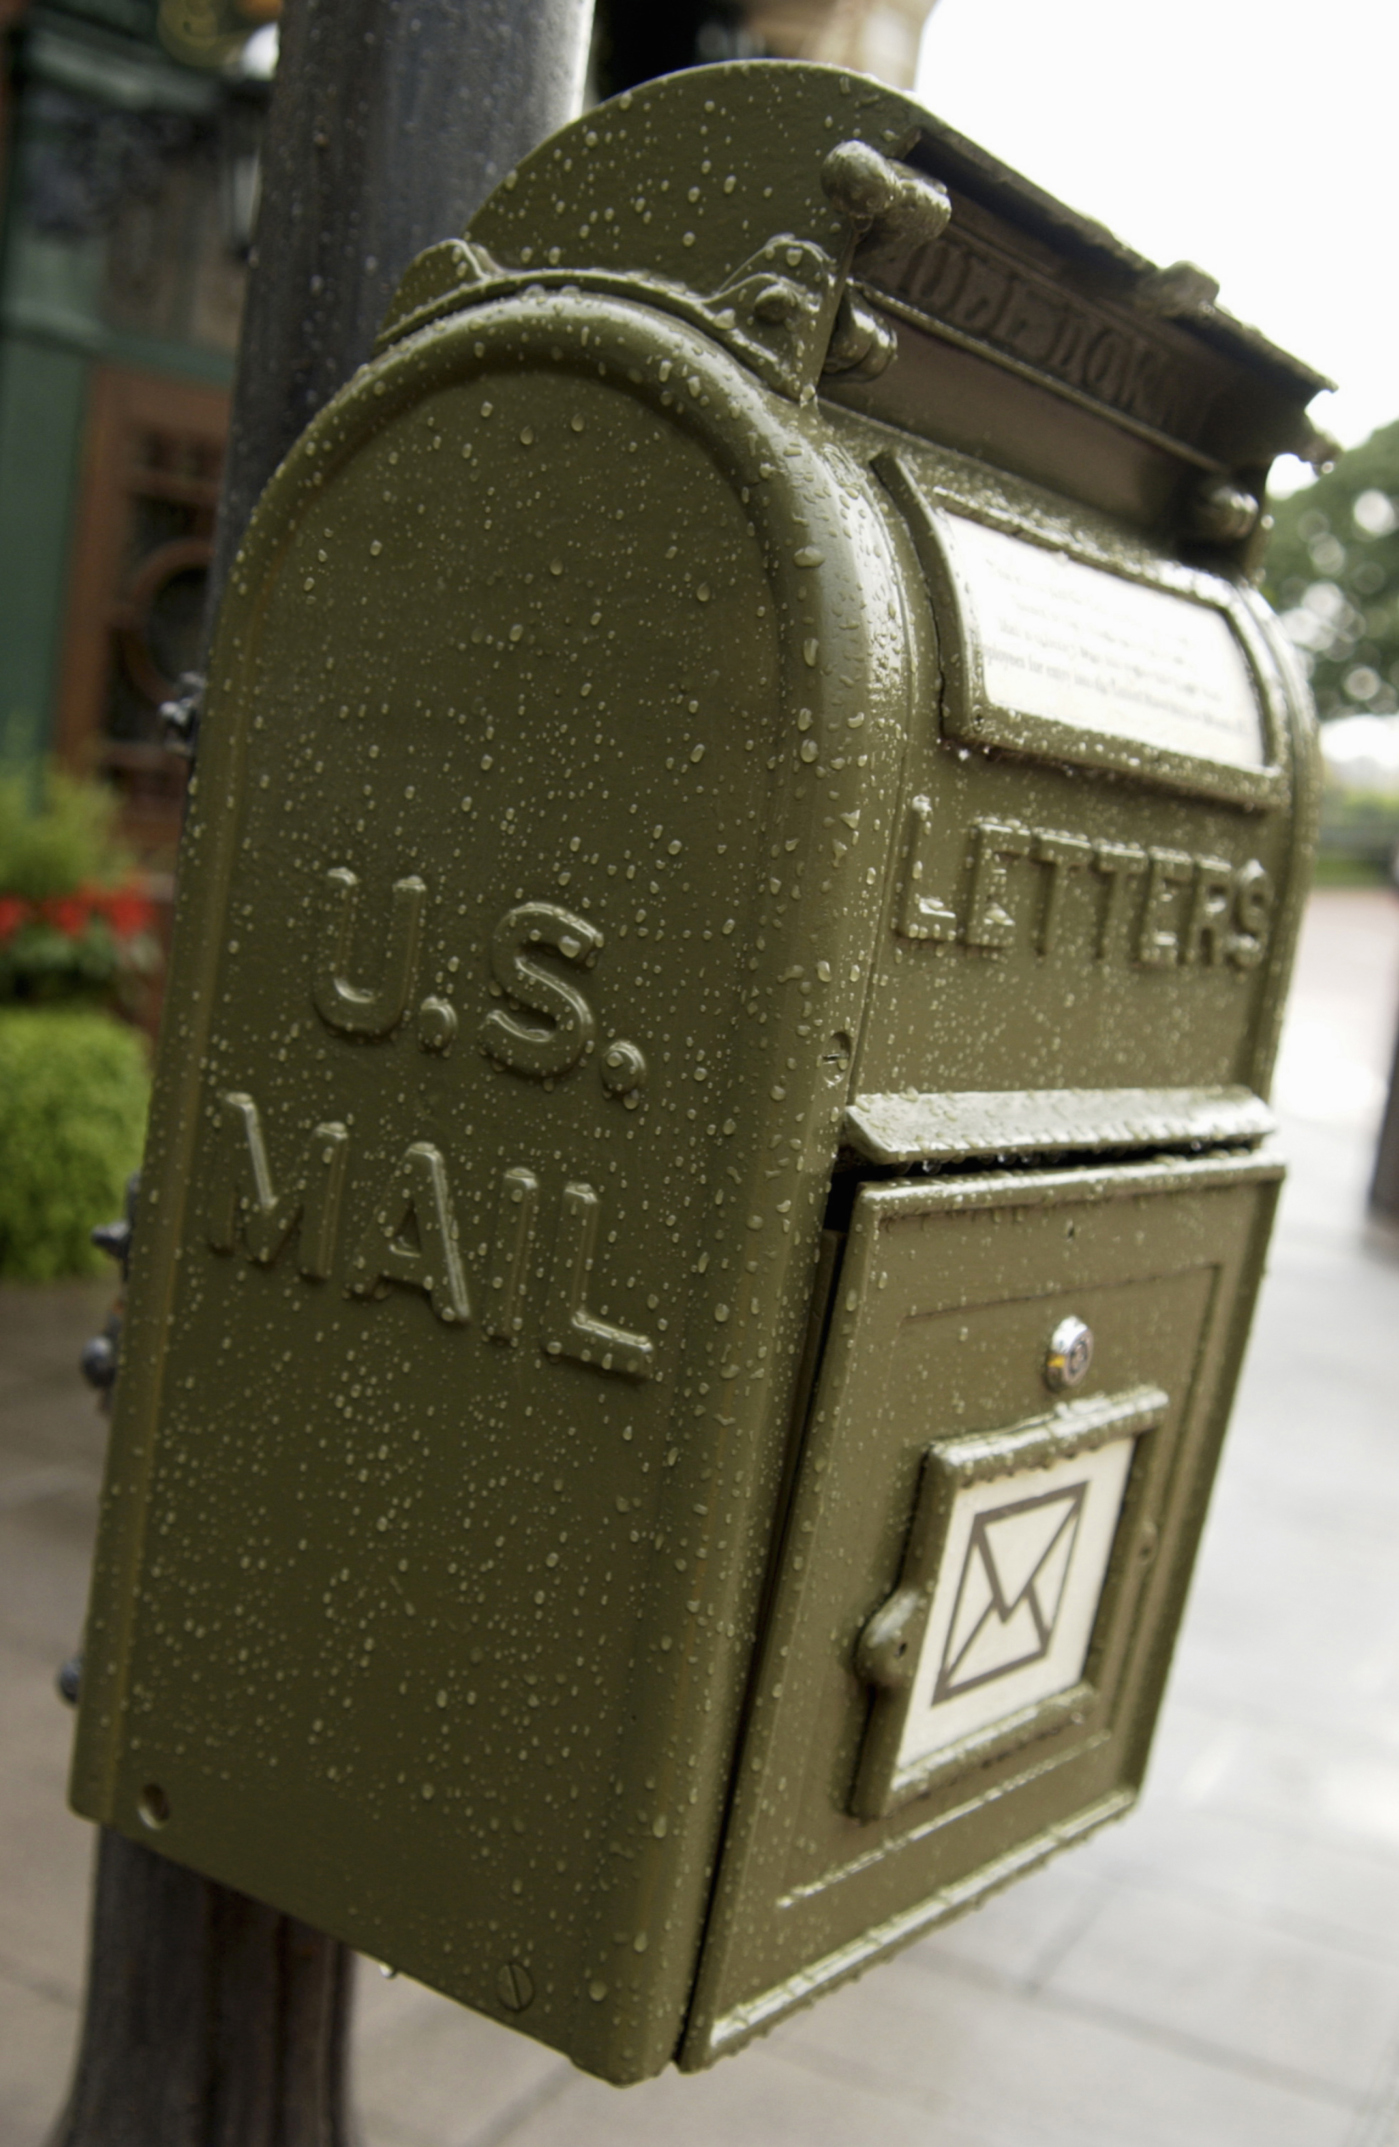 How to Send a Package in the Mail With No Return Address